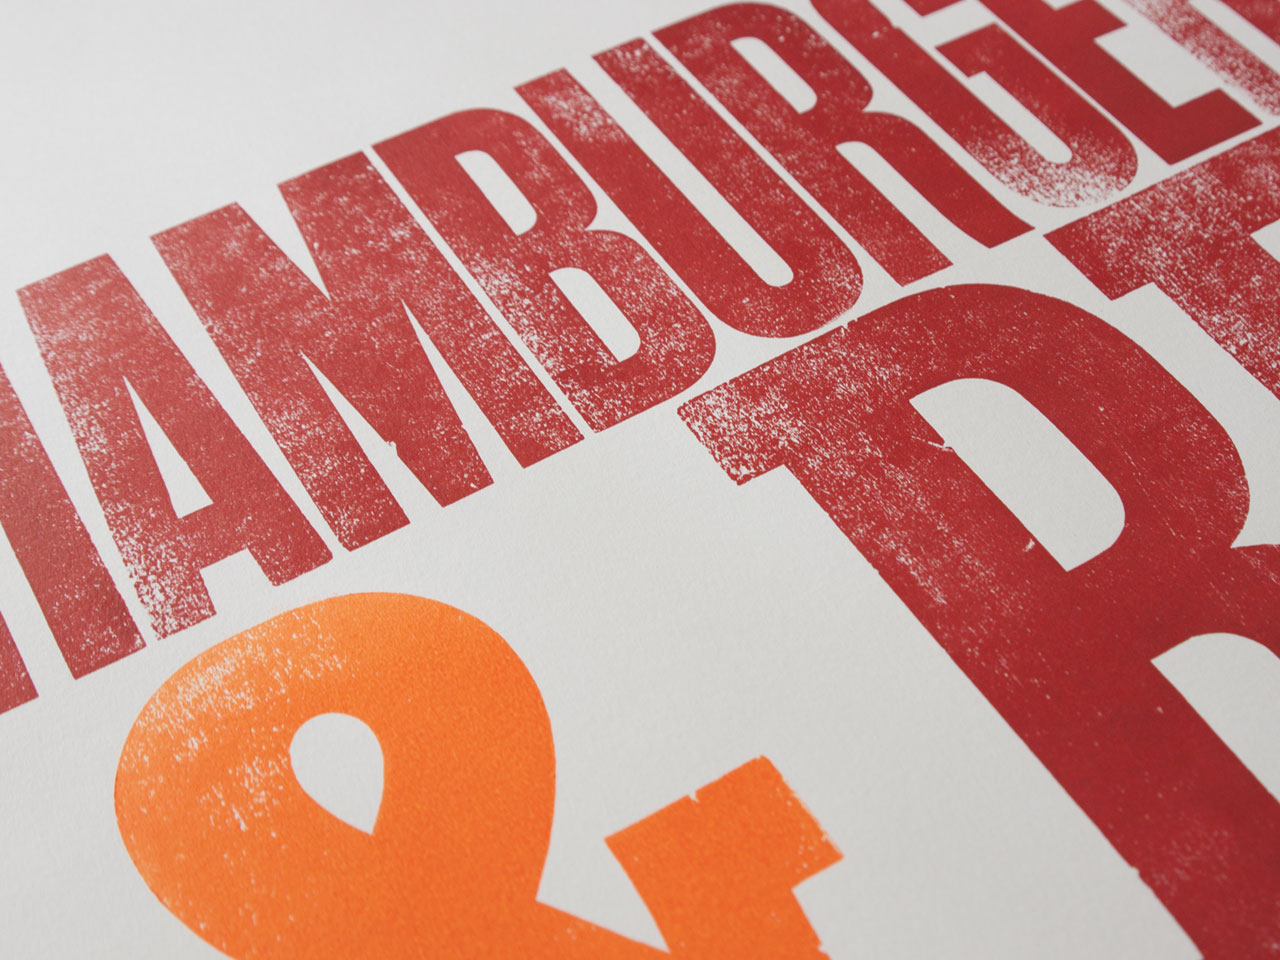 Hamburgerfonts & beer [detalle]